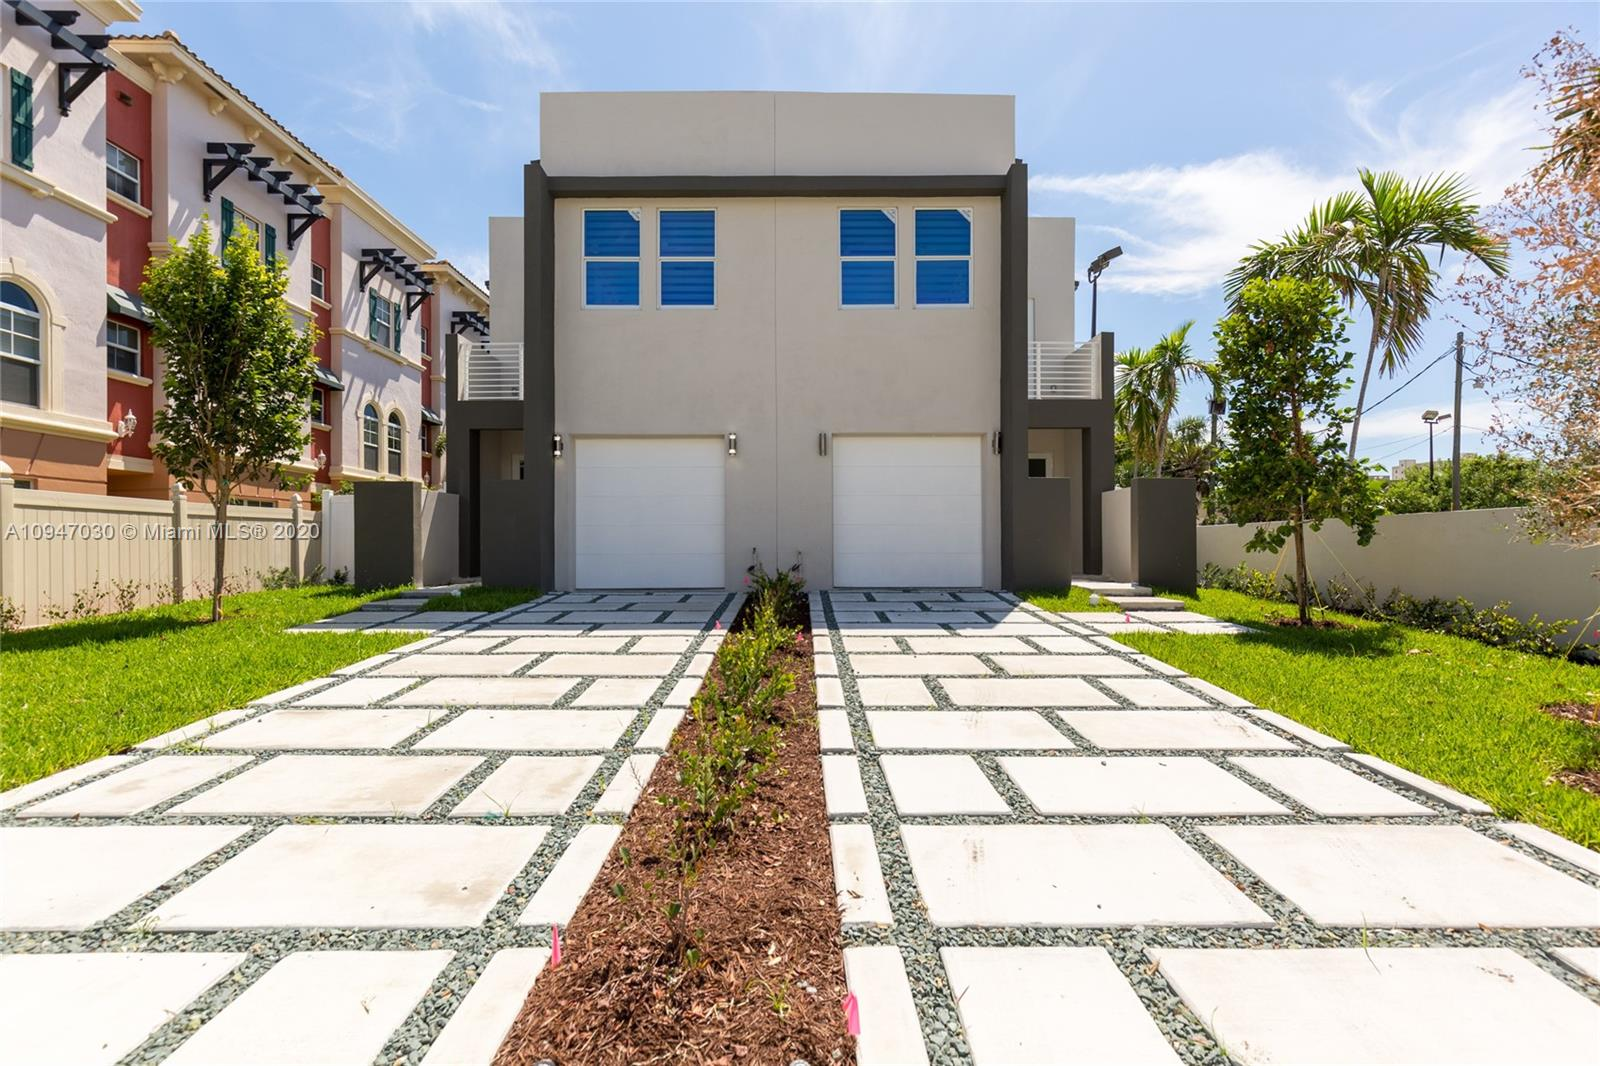 Motivated Seller!! New Construction. Just Completed. Modern townhouses with 3 bedrooms plus den/office (can be used as a 4th bedroom), 3 bathrooms, 1 car garage. Spacious custom made kitchen with quartz countertops, open to dining and living area. Master suite with walk-in closets, bath tub, separate shower and double sinks. No HOA fees. Great neighborhood, walking distance to Las Olas, Galleria Mall. beaches, airport and all Fort Lauderdale has to offer! Washer and Dryer will be installed prior closing.